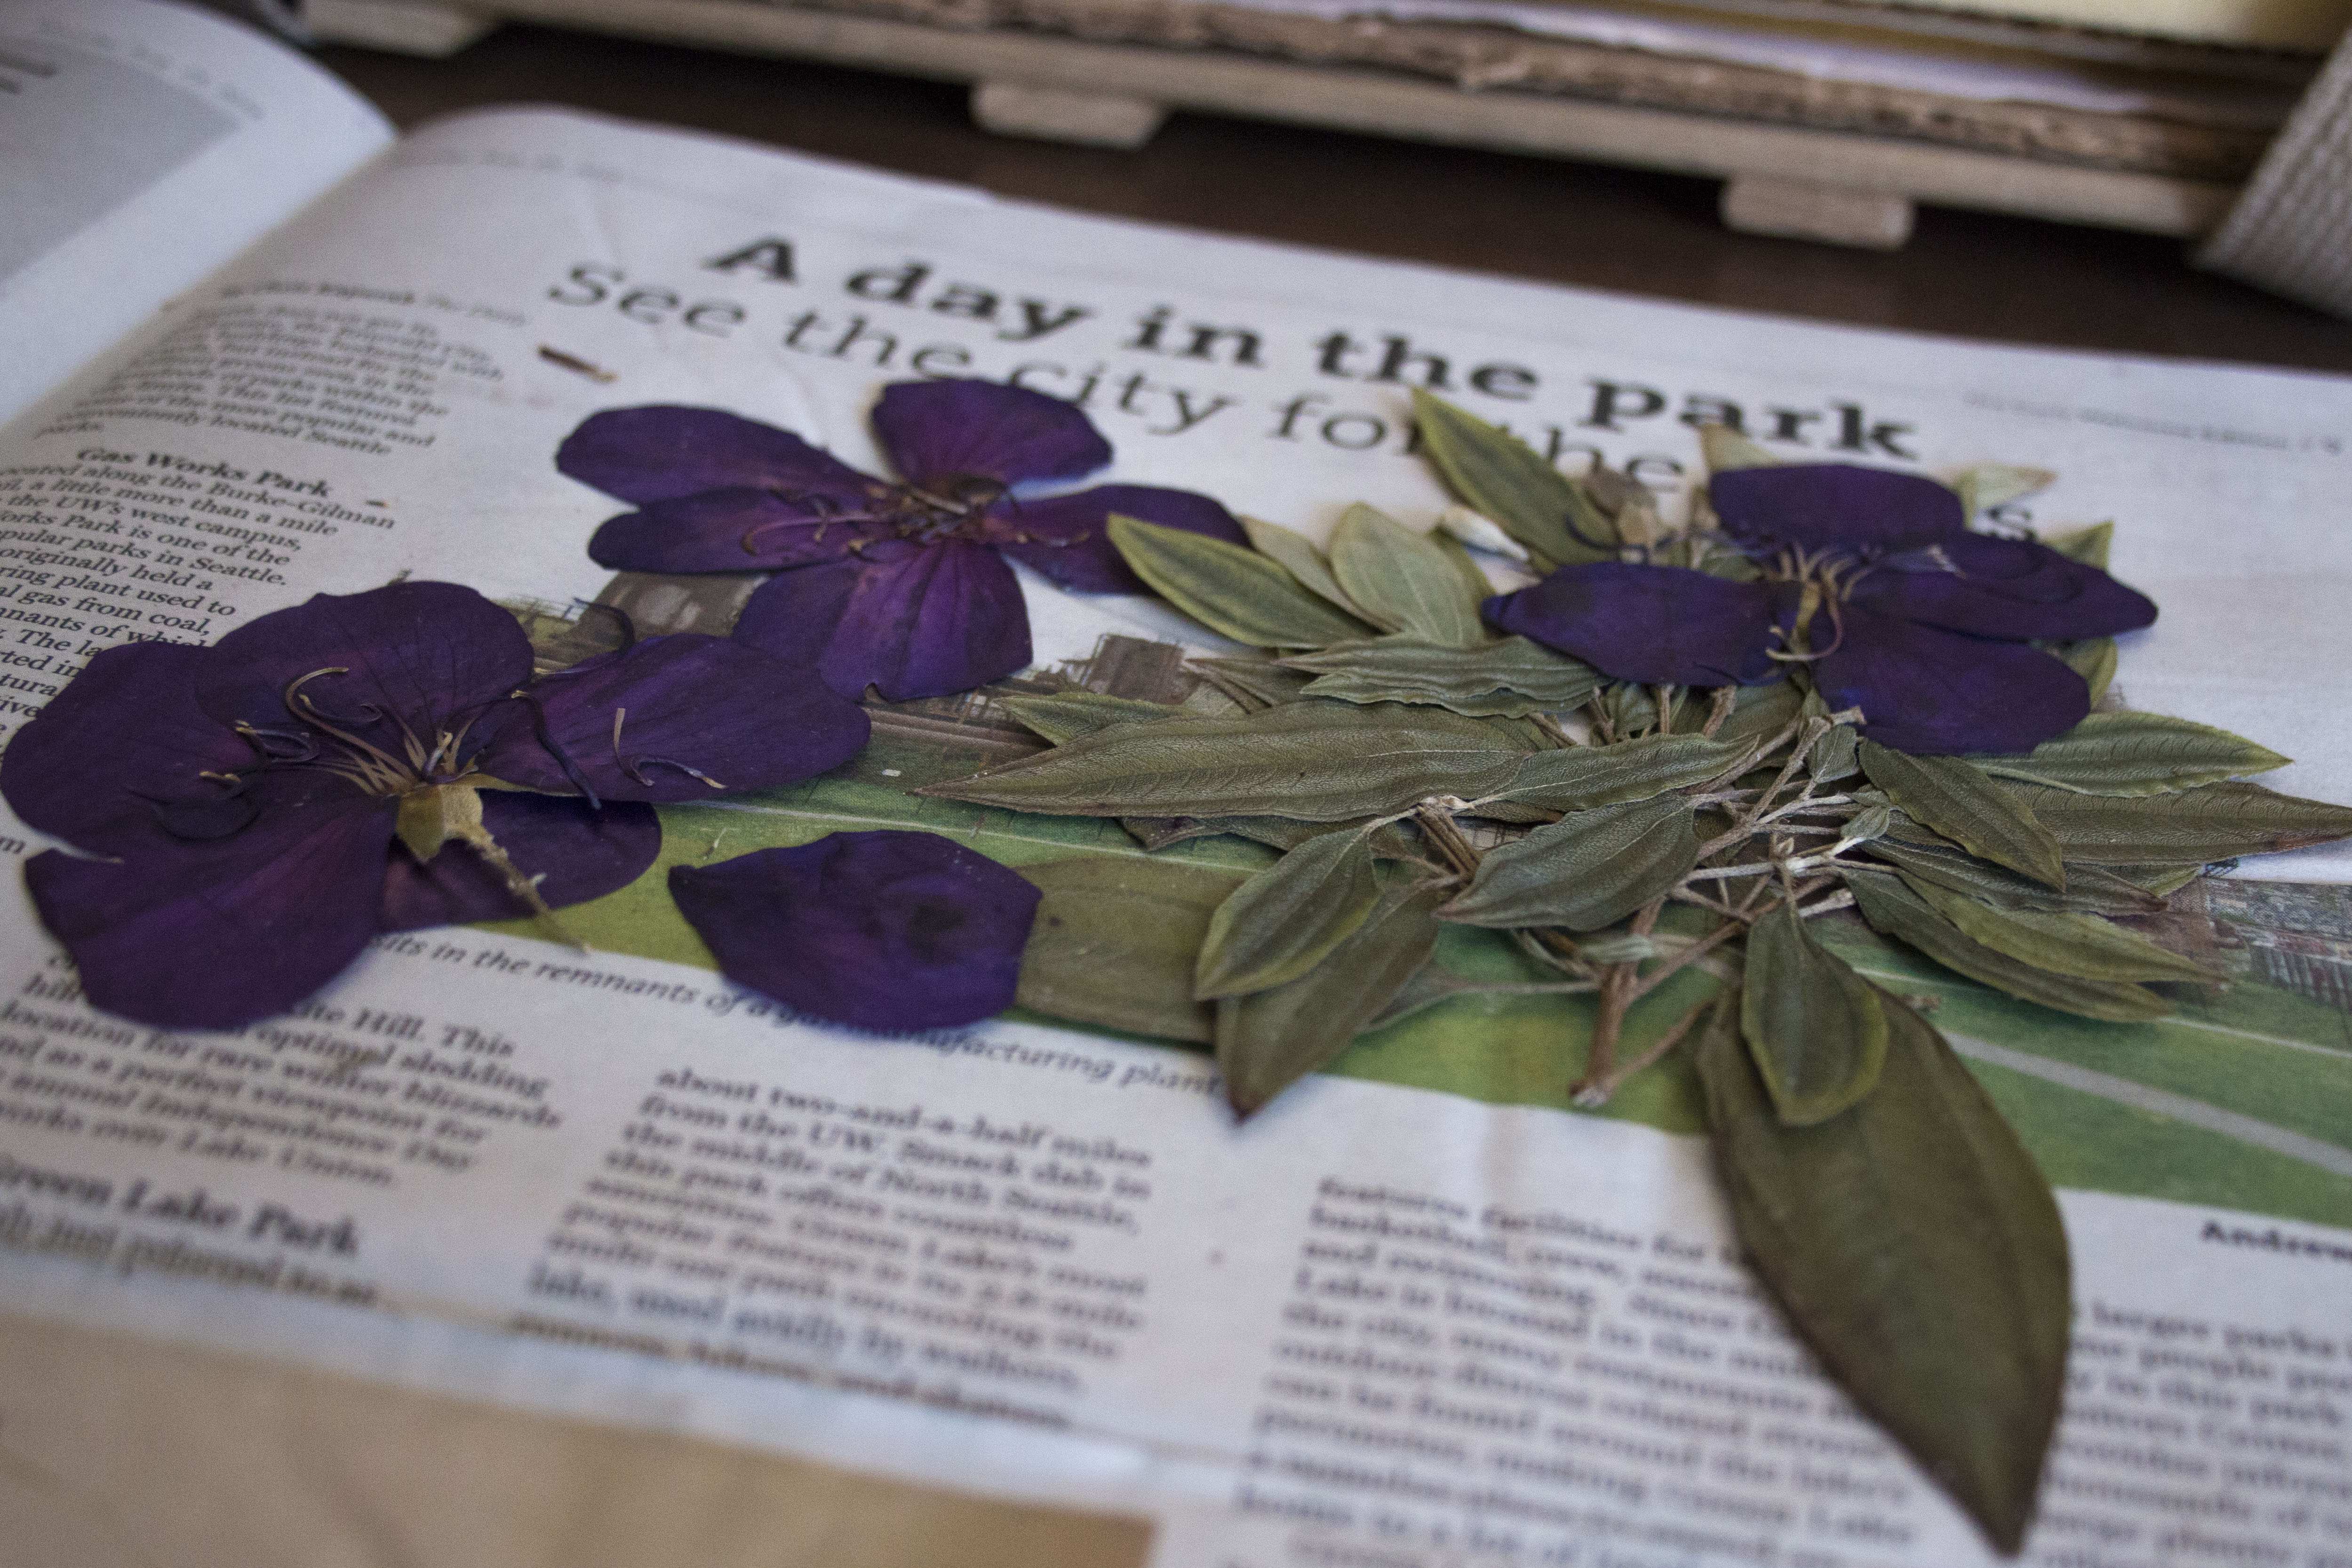 A herbarium specimen (Tibouchina) after being dried and pressed